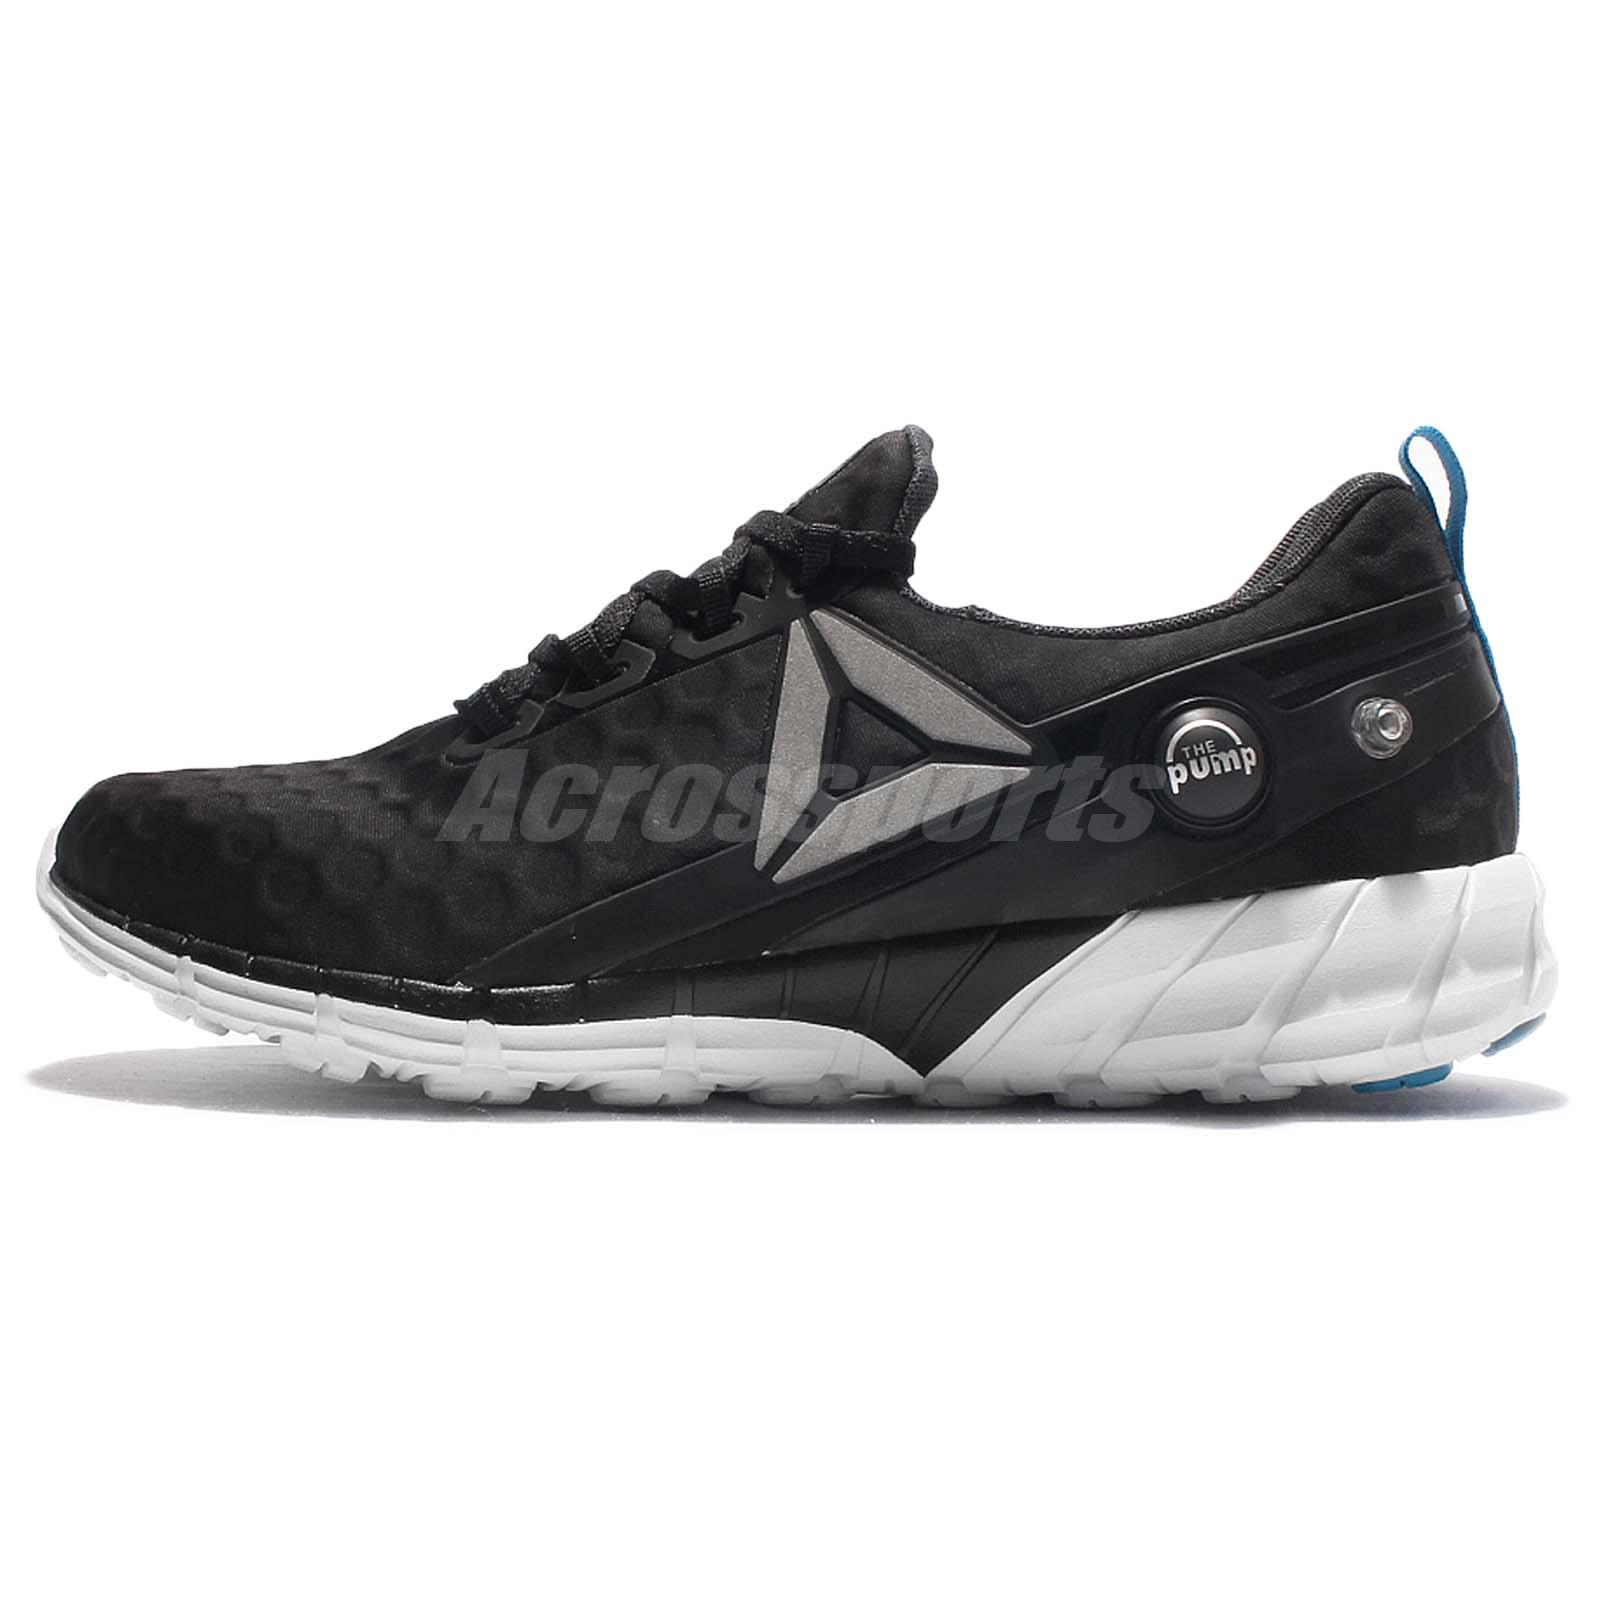 official photos bcedf dd642 Reebok Zpump Fusion 2.5 WP Black White Blue Women Running Shoes Sneakers  AR2819